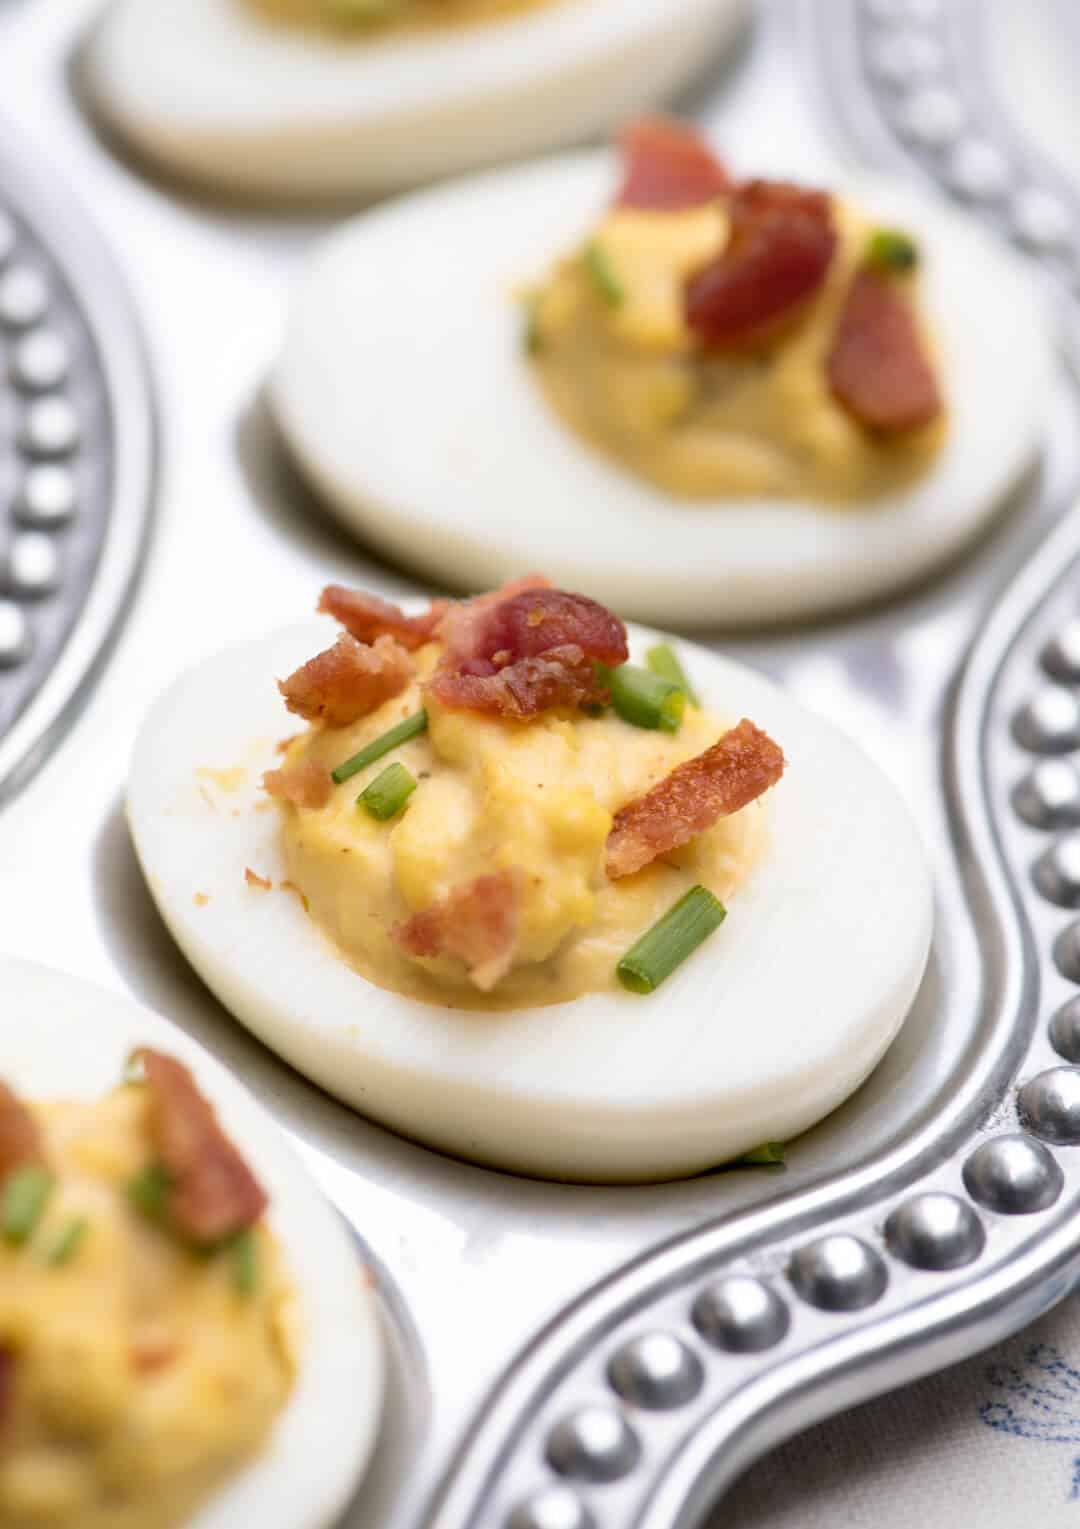 A close up shot of a Bacon Ranch Deviled Egg topped with chives and bacon.